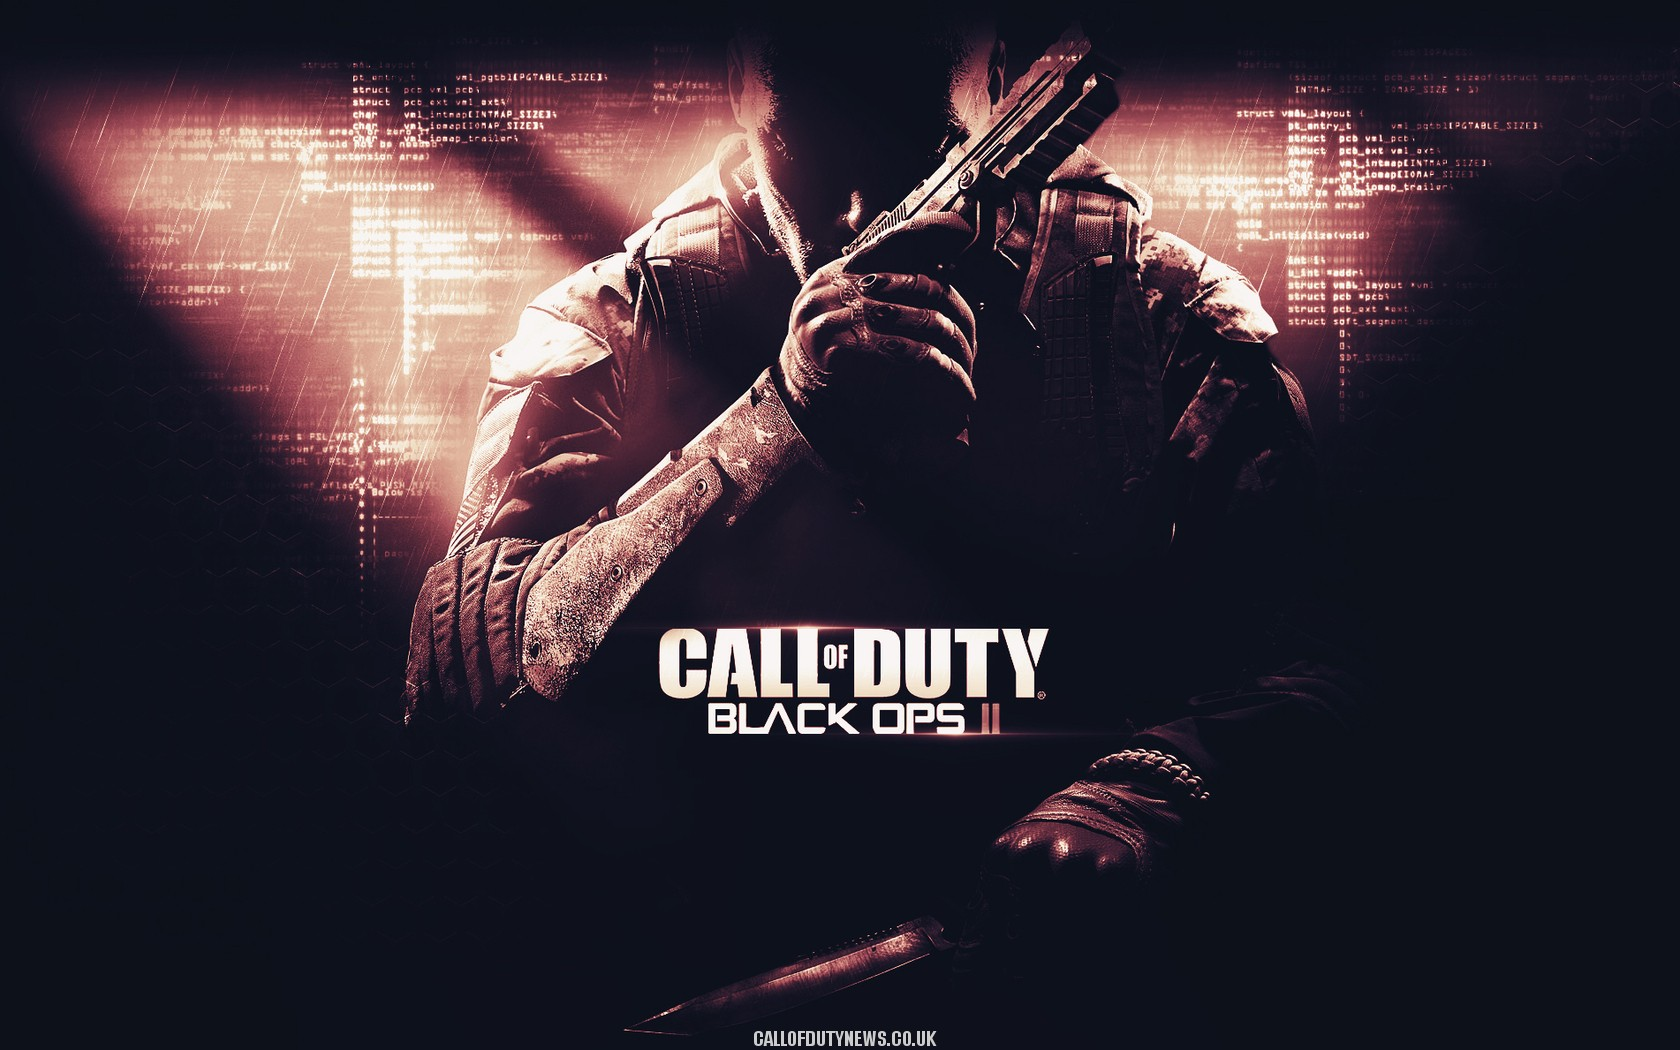 Cod Black Ops 2 Wallpapers Posted By John Walker